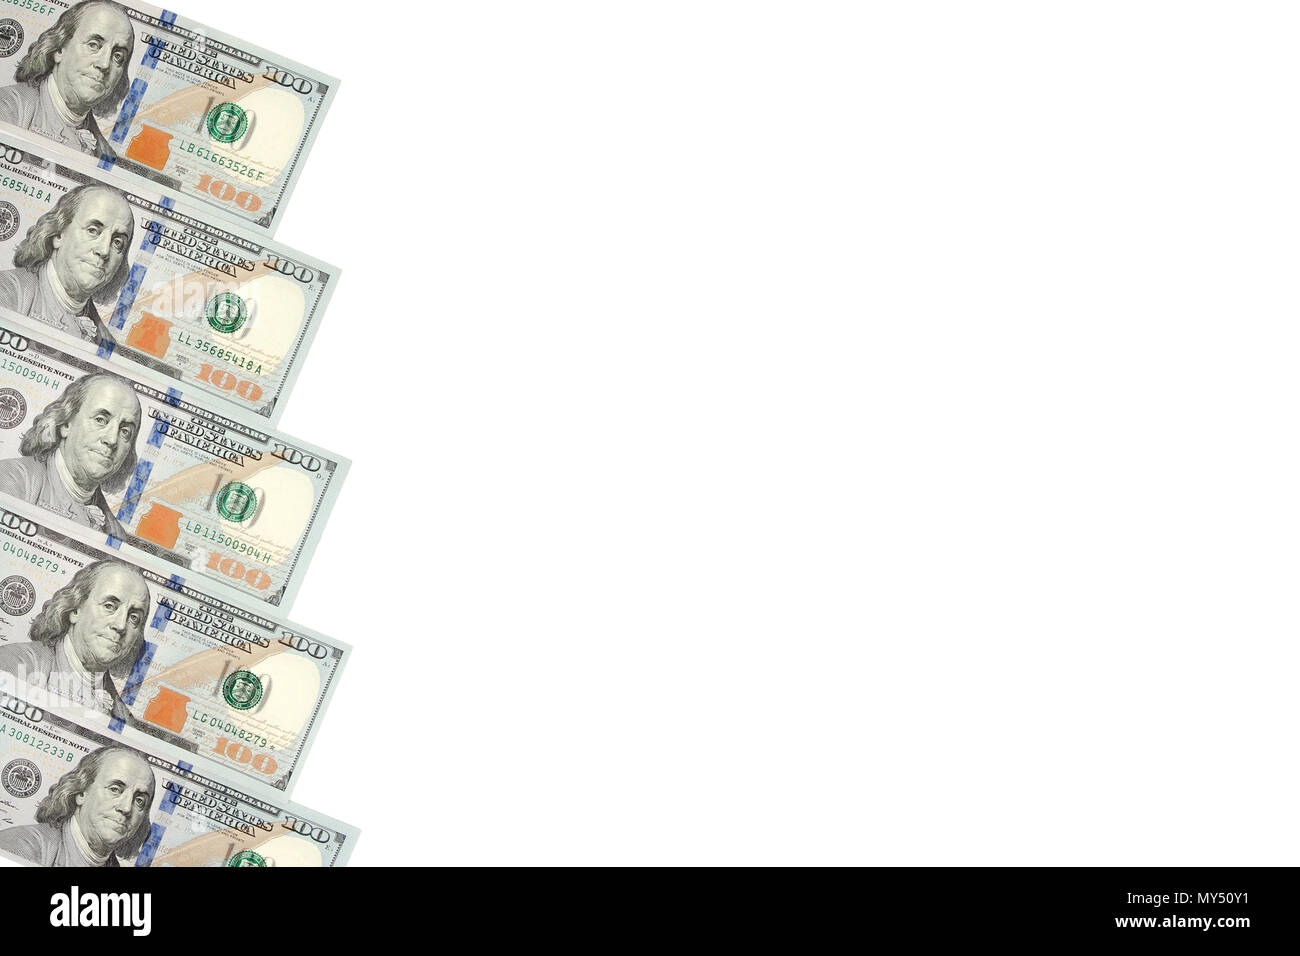 Background with money american hundred dollar bills with copy space inside. Frame of banknotes denominations of 100 dollars - Stock Image